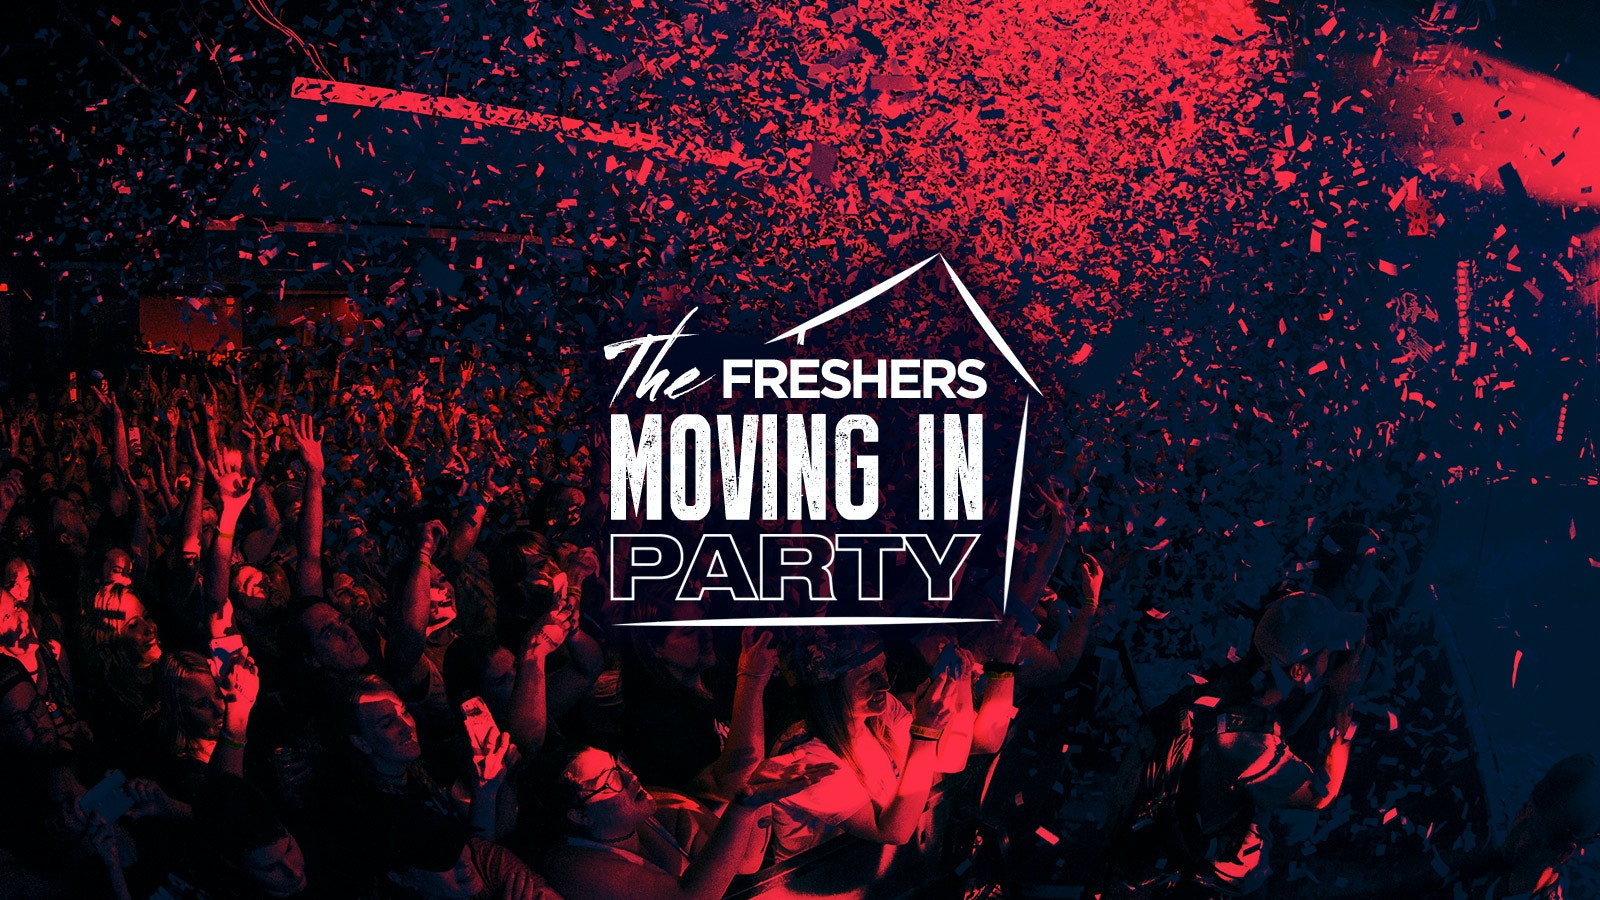 The Moving in Party // Surrey Freshers 2019 (Guildford)